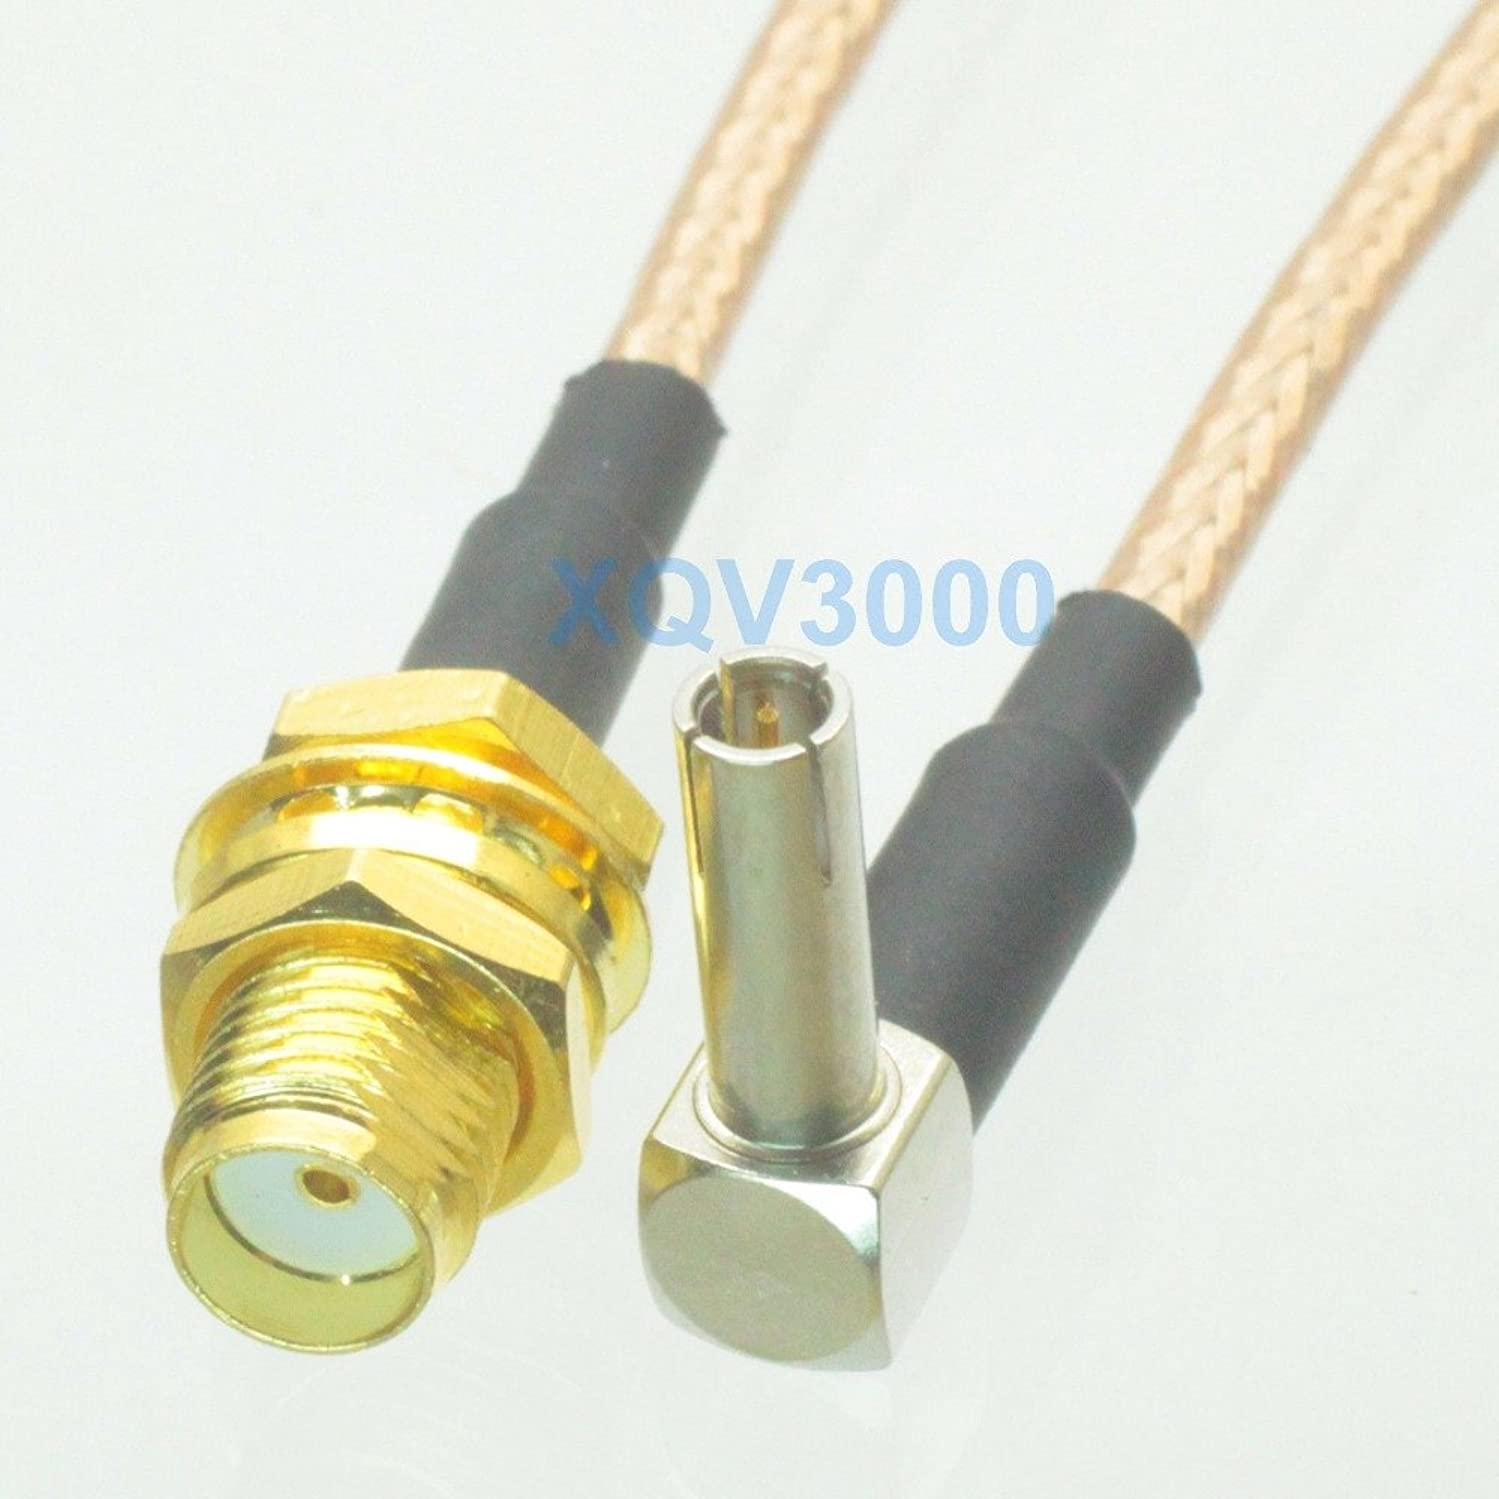 Gimax RG316 12inch RF pigtail TS9 male plug pin right angle to SMA female bulkhead Cable For 3G USB Modem